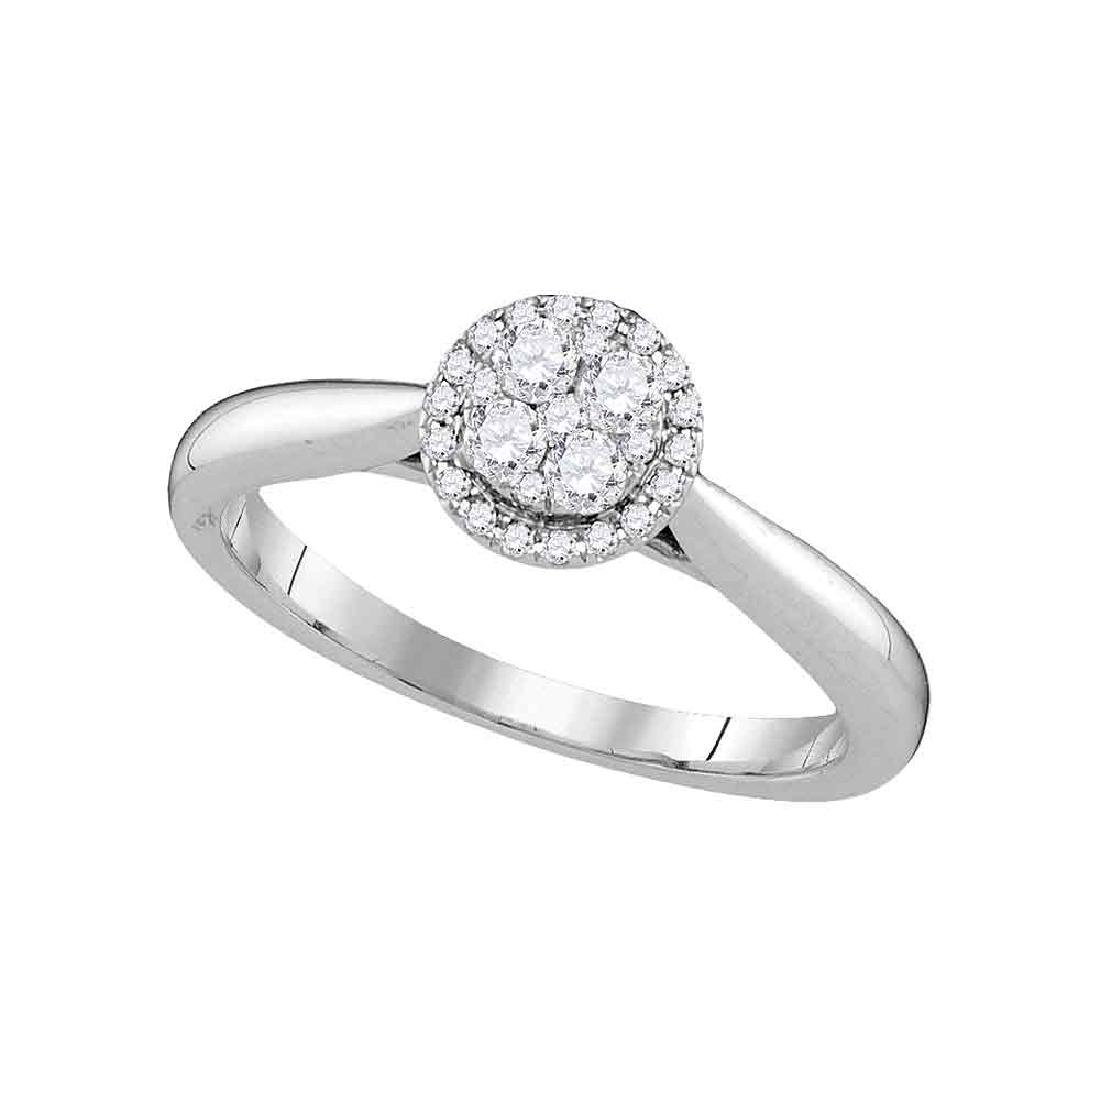 0.25 CTW Diamond Cluster Bridal Engagement Ring 14KT